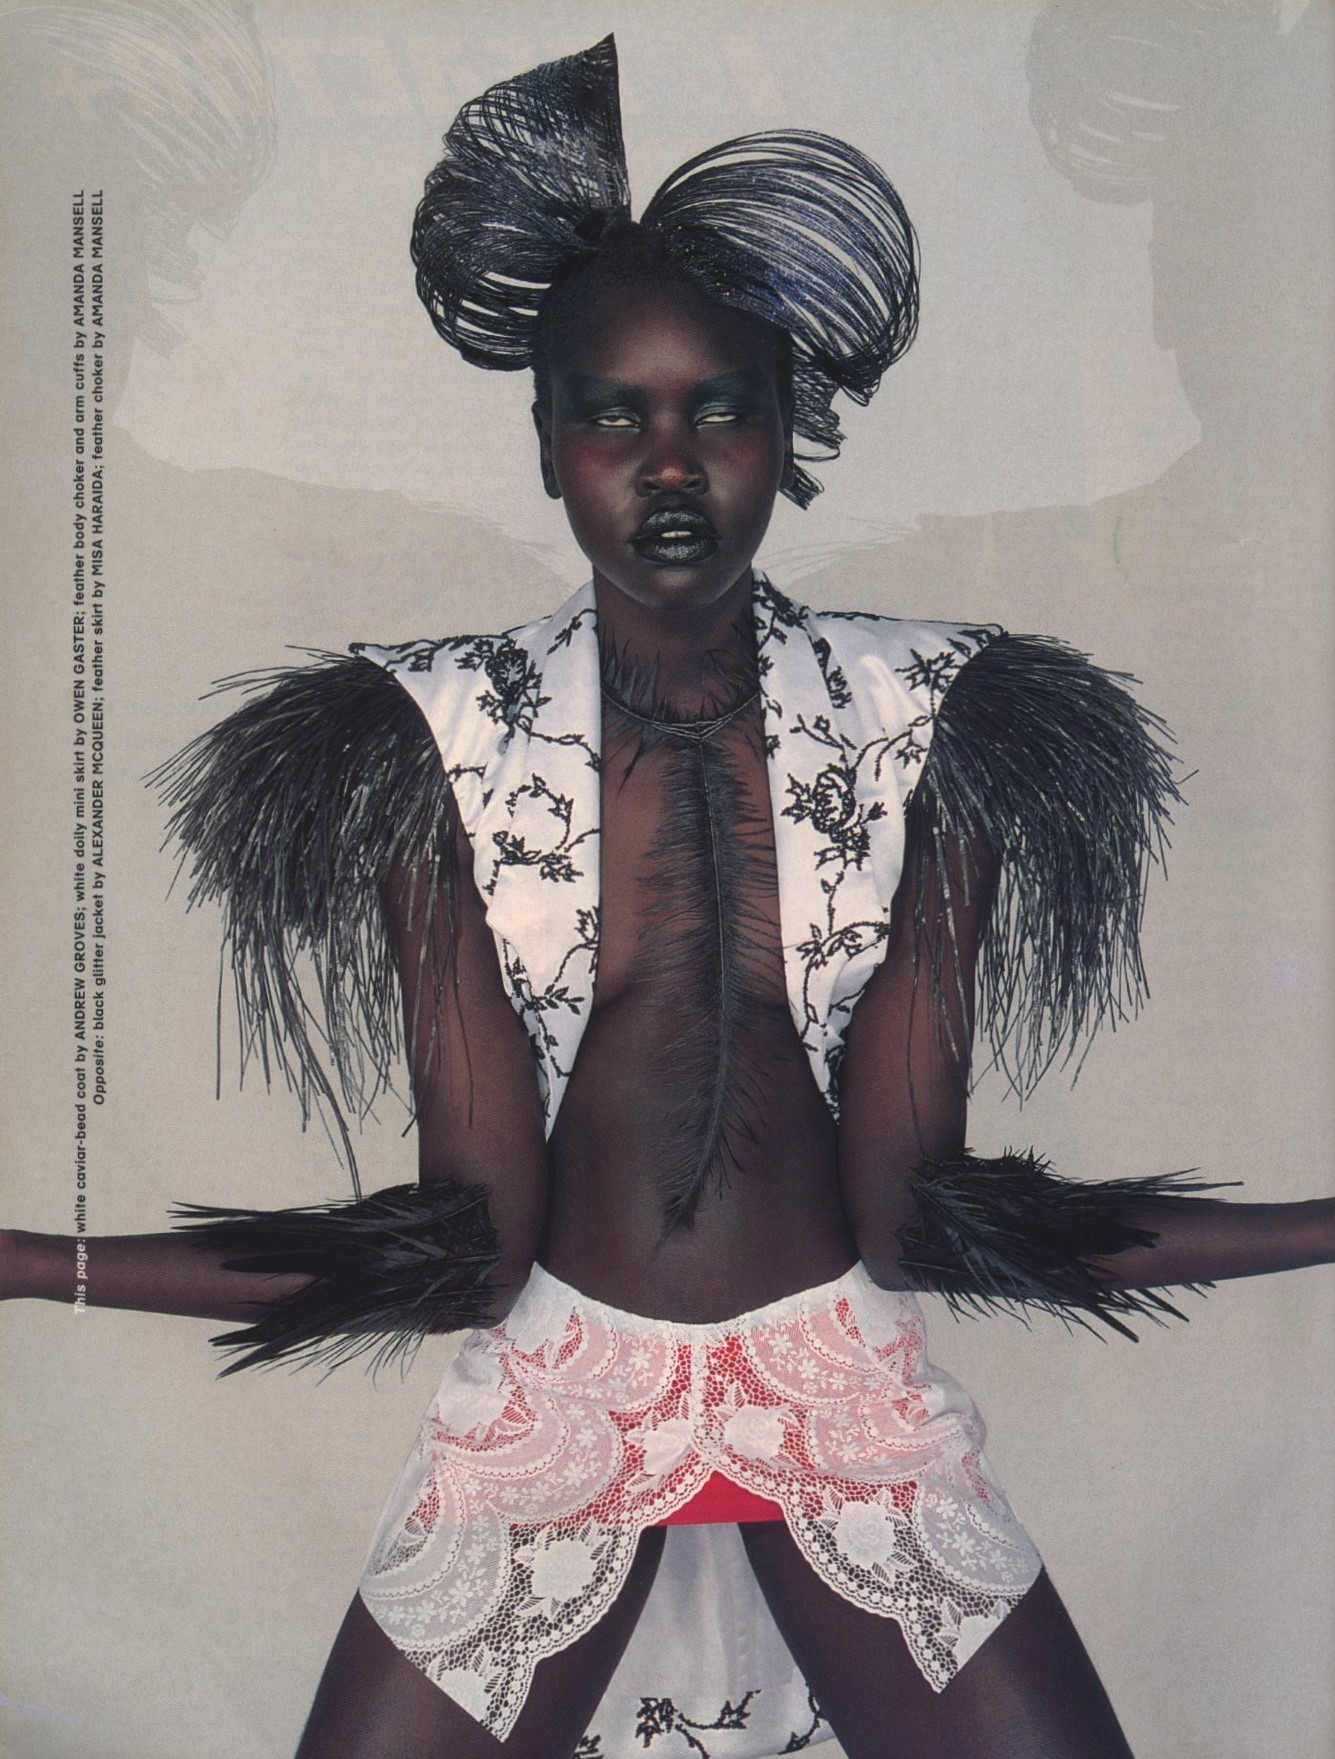 alek wek photography peter robathan styling seta niland the face no 13 february 1998 1